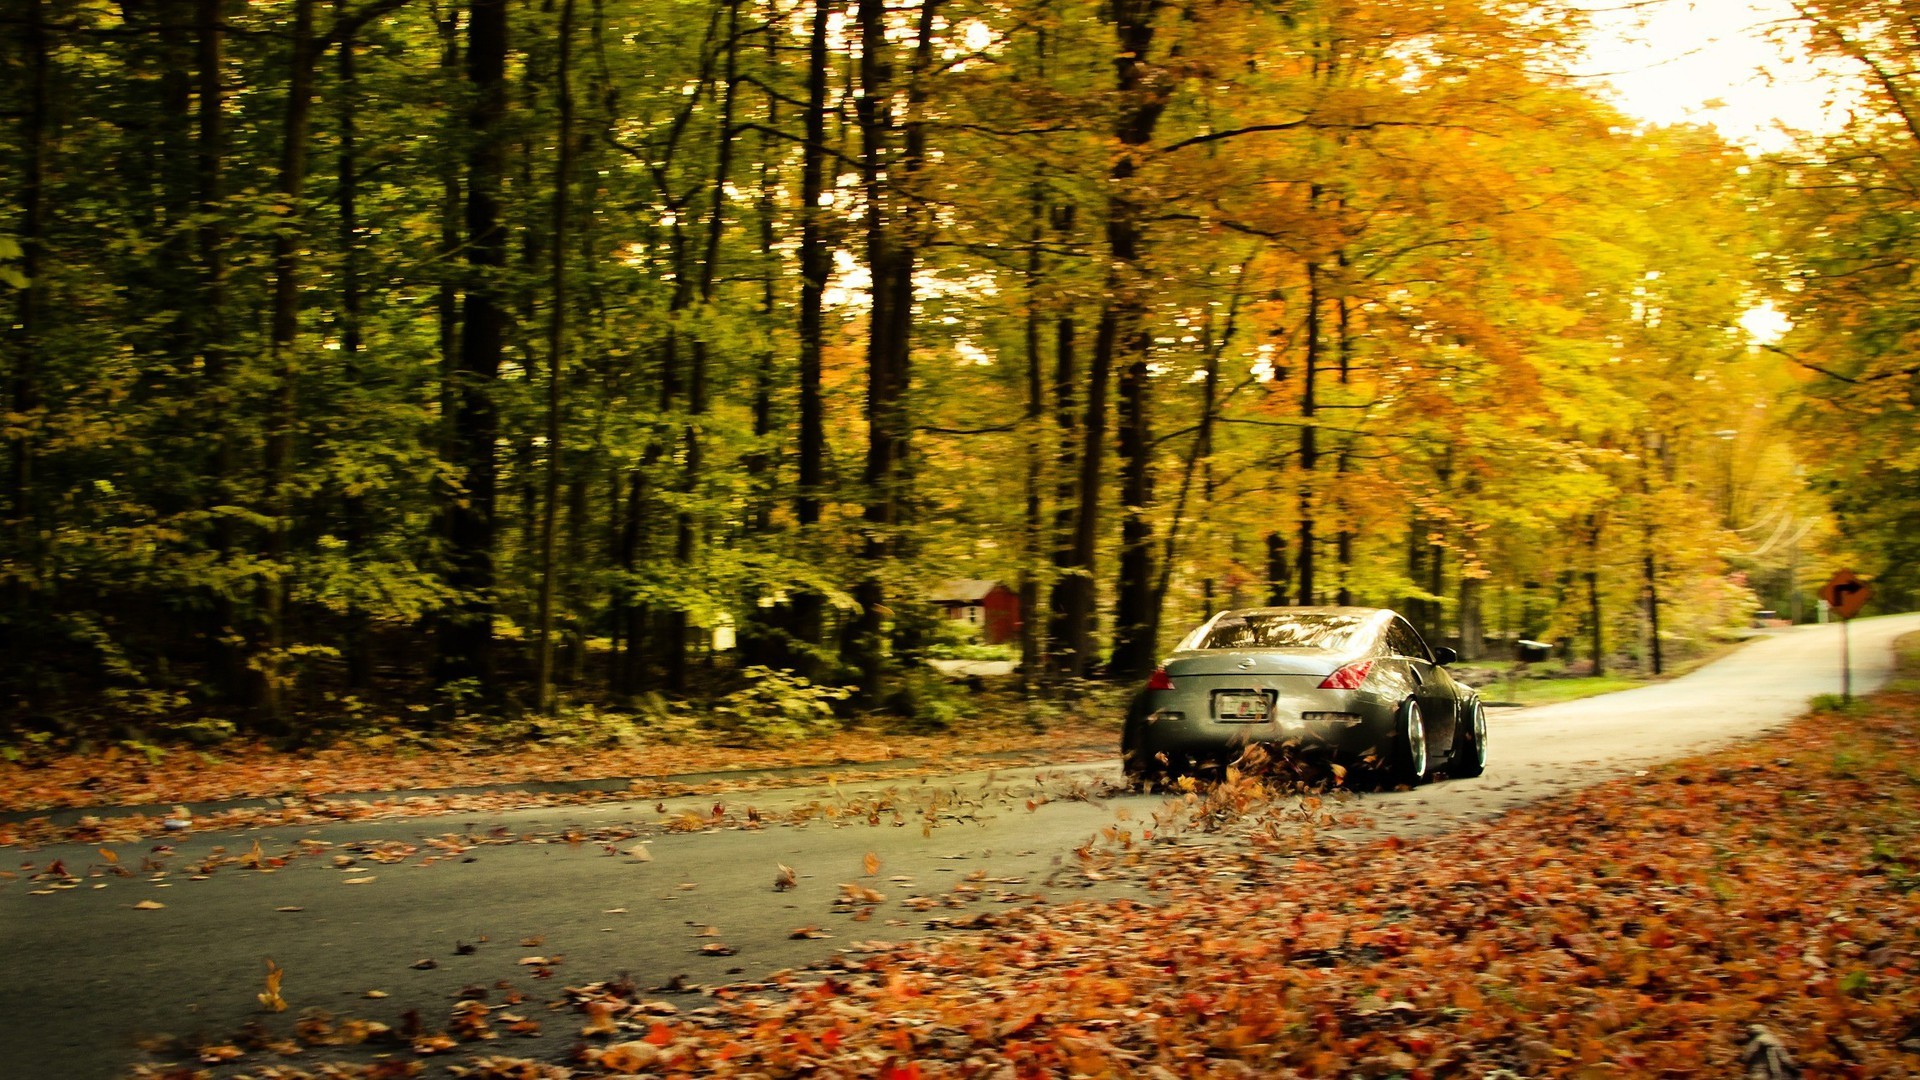 Fall 4k Wallpaper Nissan 350z Fallen Leaves Wallpaper Allwallpaper In